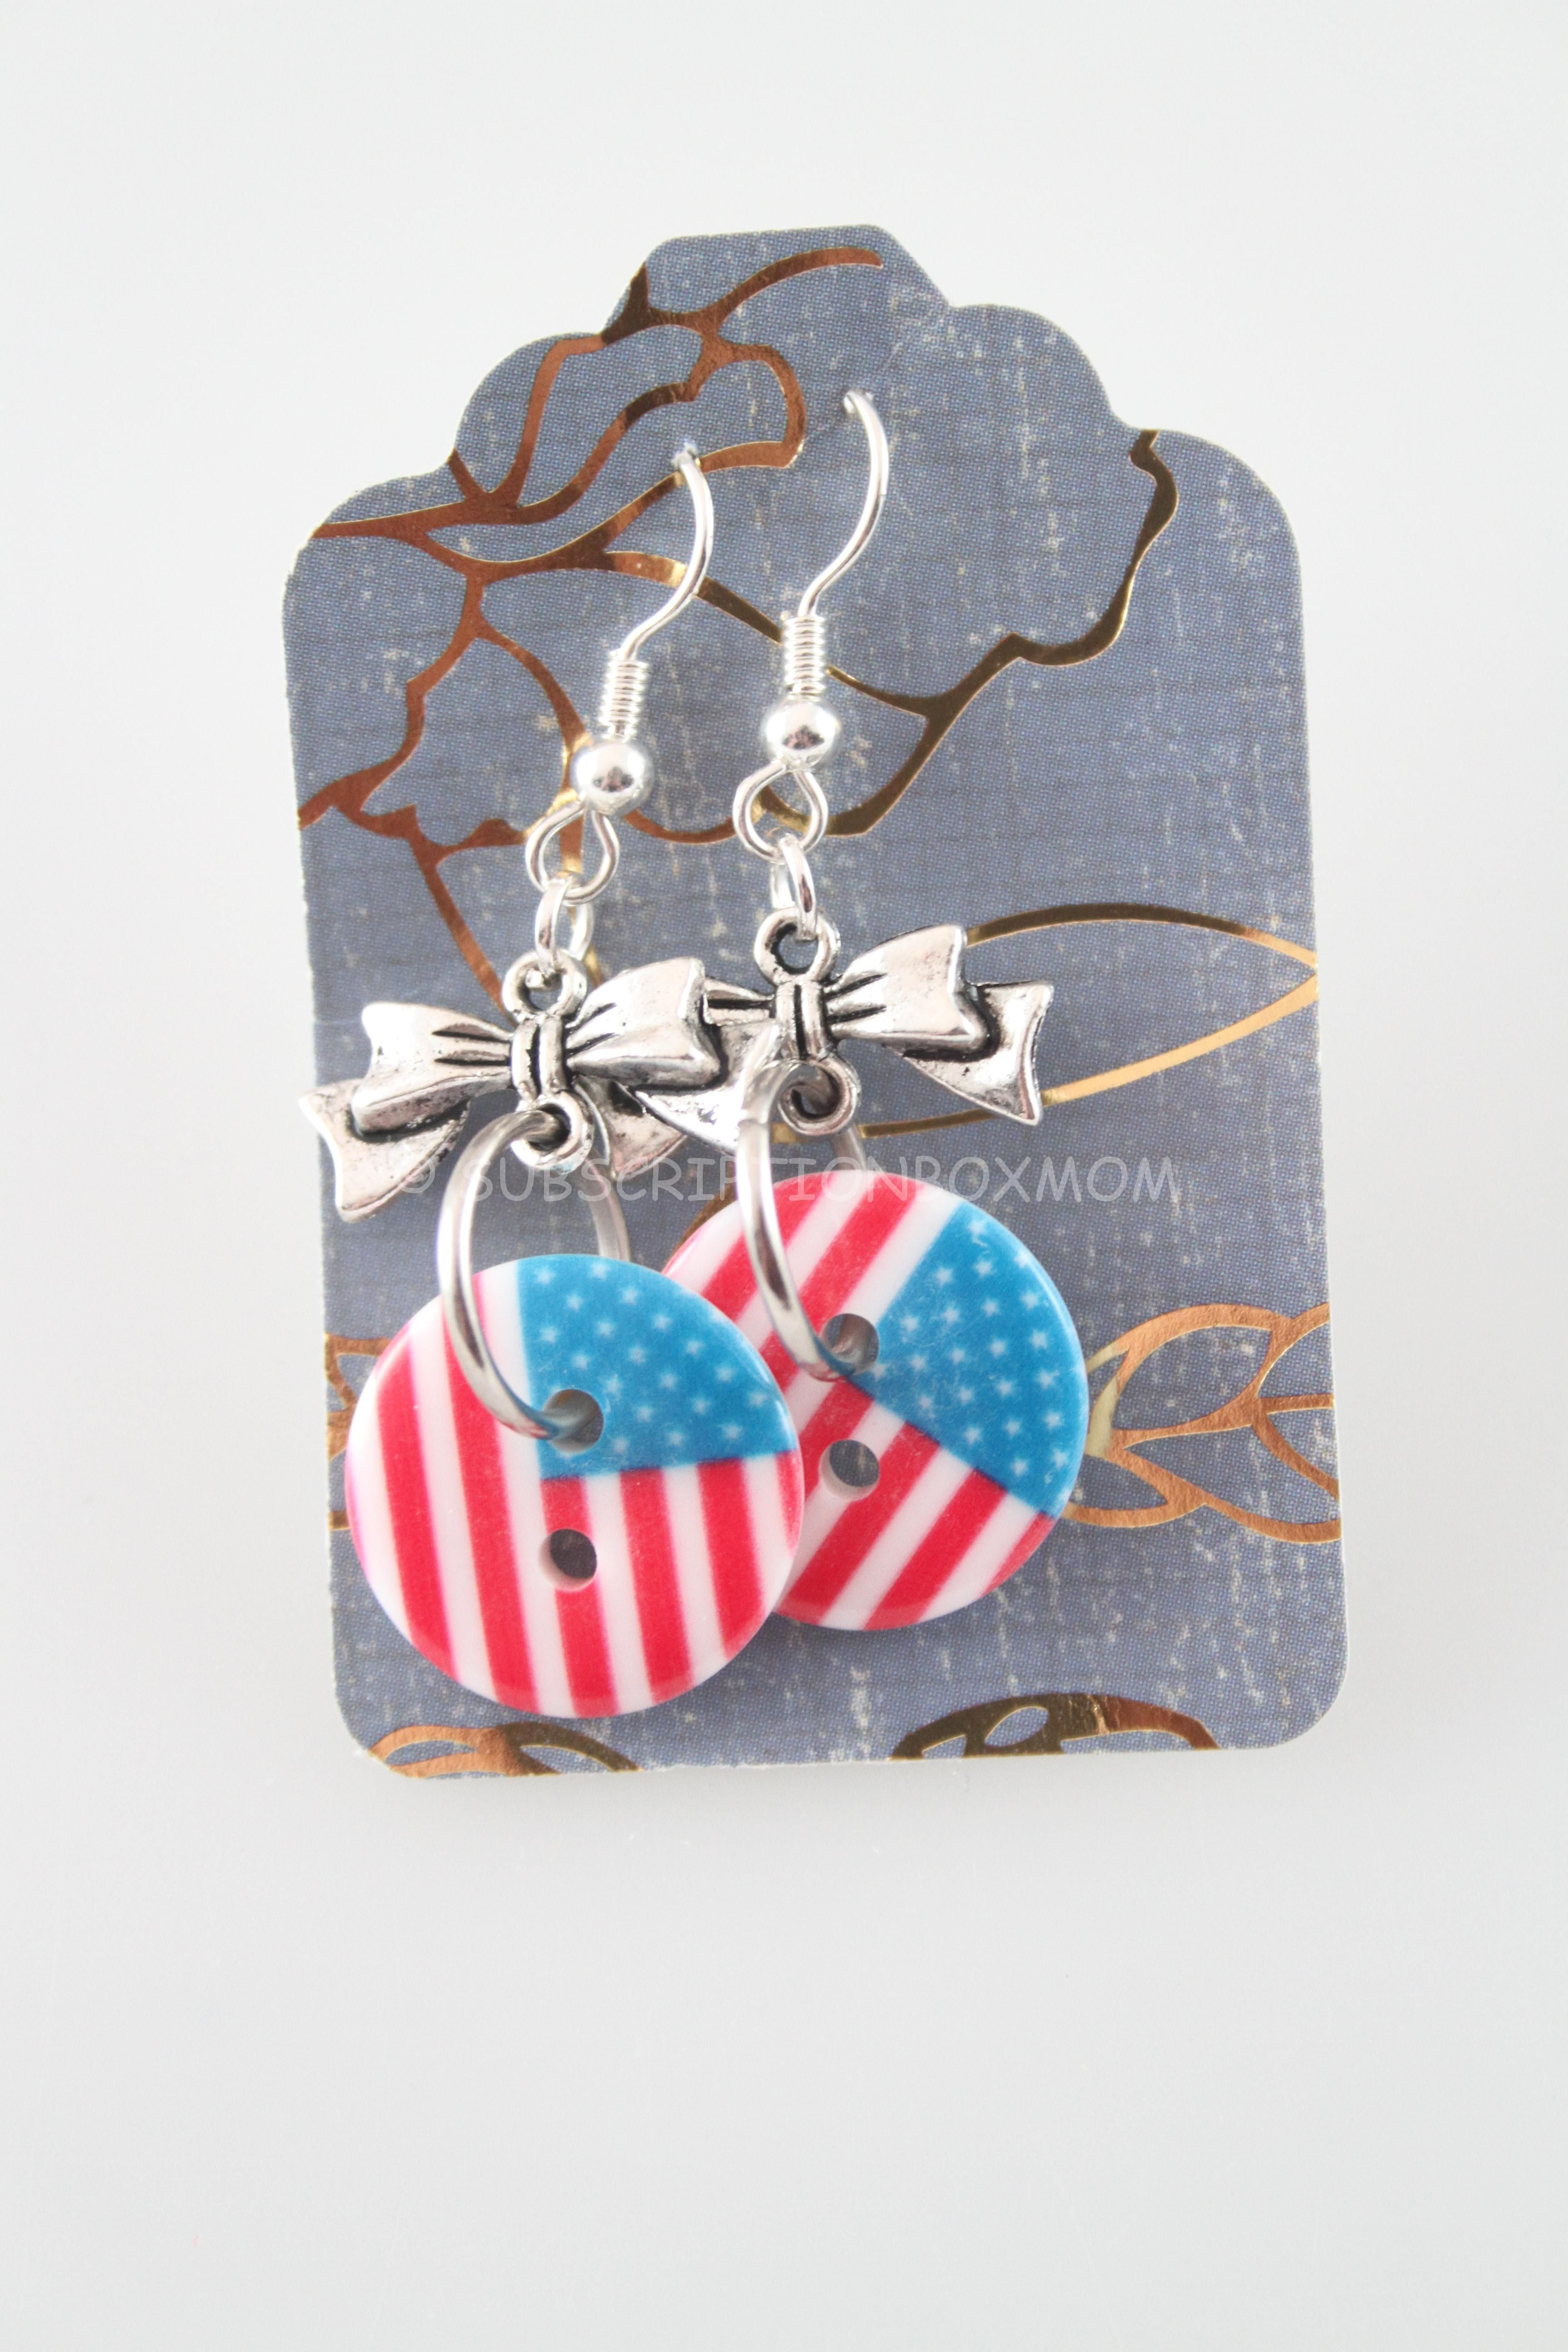 handmade july 4th boxes | ... are cute and something I will save for Veterans Day and 4th of July